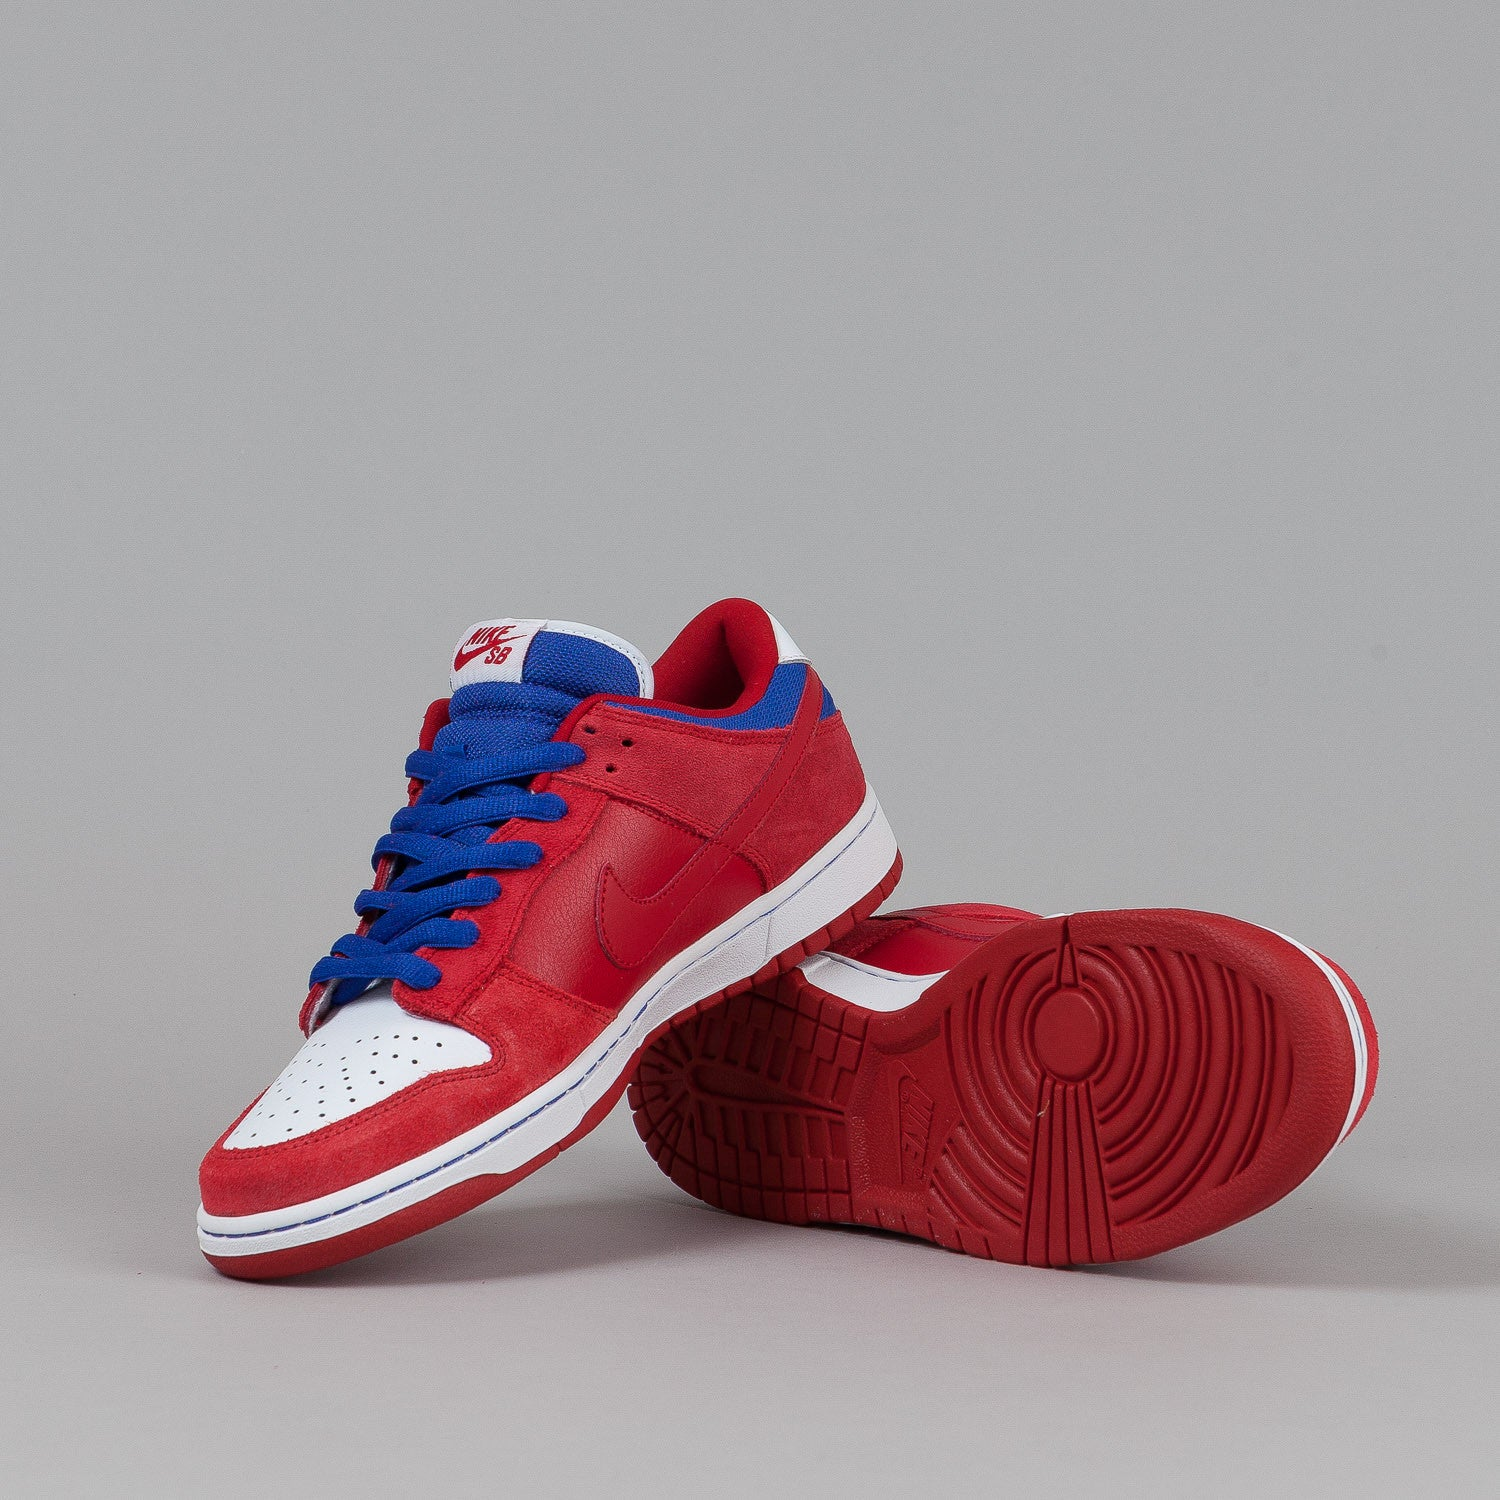 Nike SB Dunk Low Pro Shoes - Varsity Red / Varsity Red / Old Royal